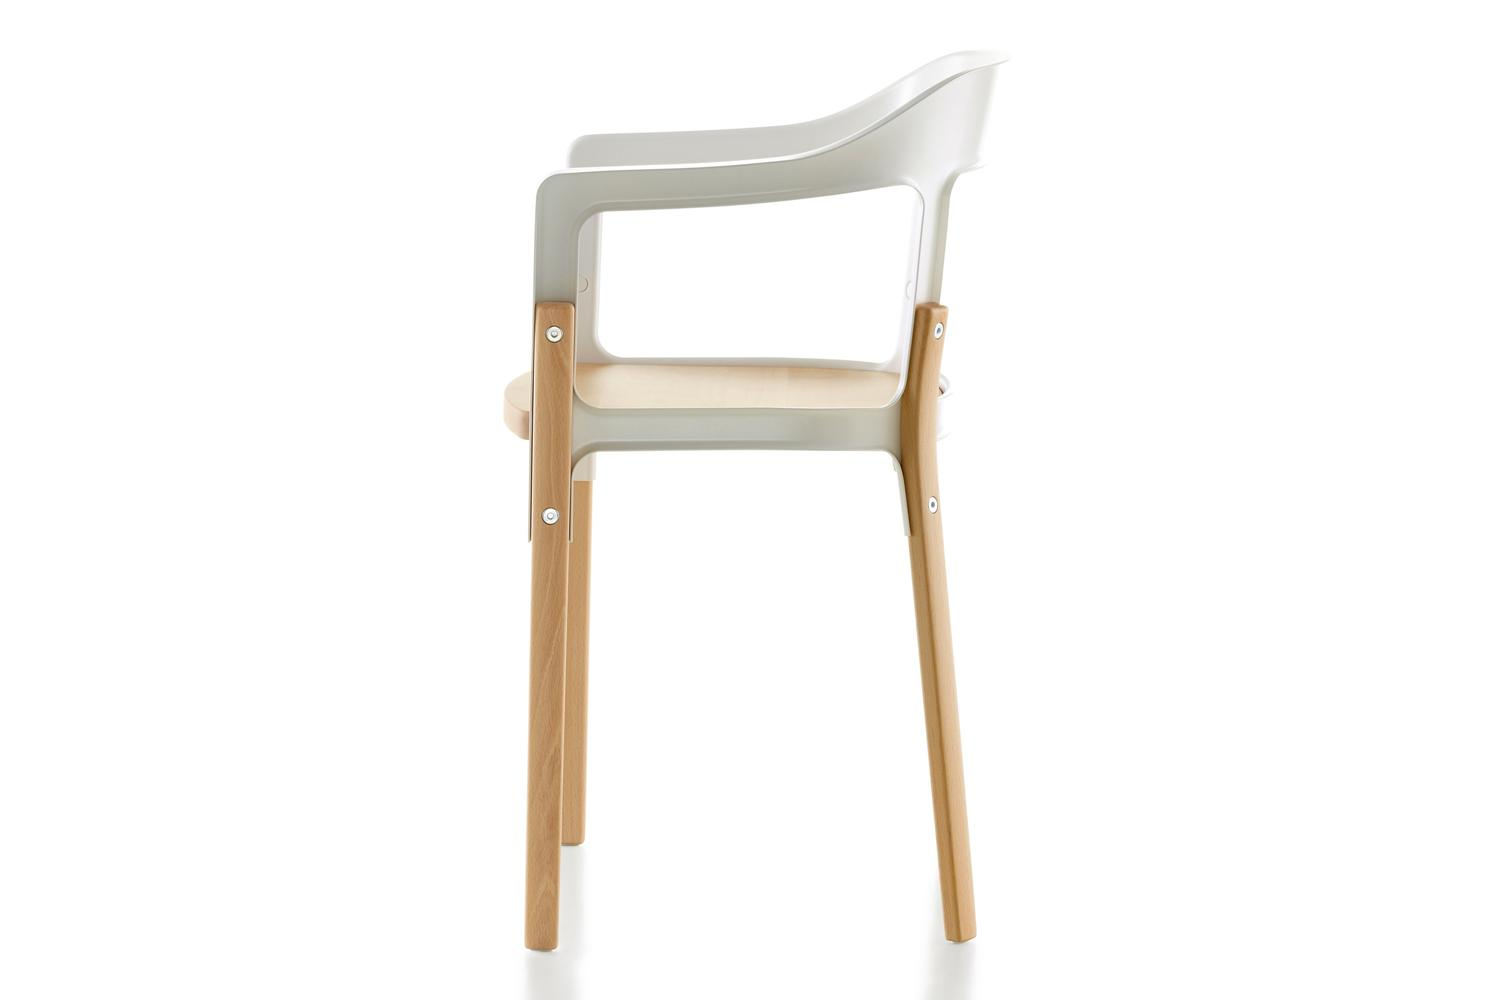 Steelwood_Chair_Side.jpg 1,500×1,000 pixels